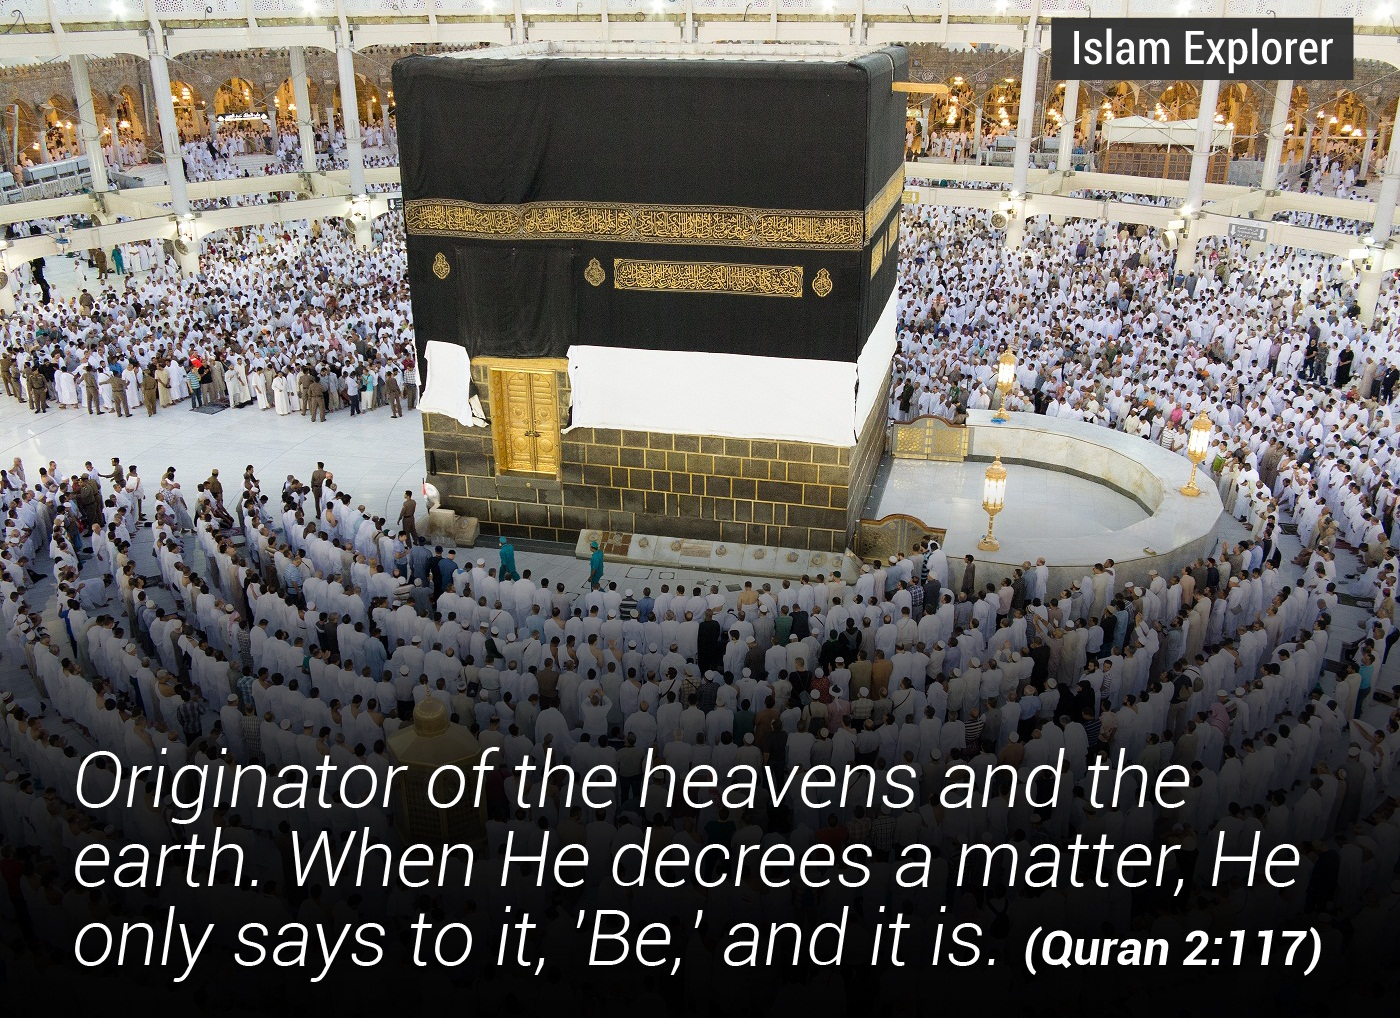 Originator of the heavens and the earth.